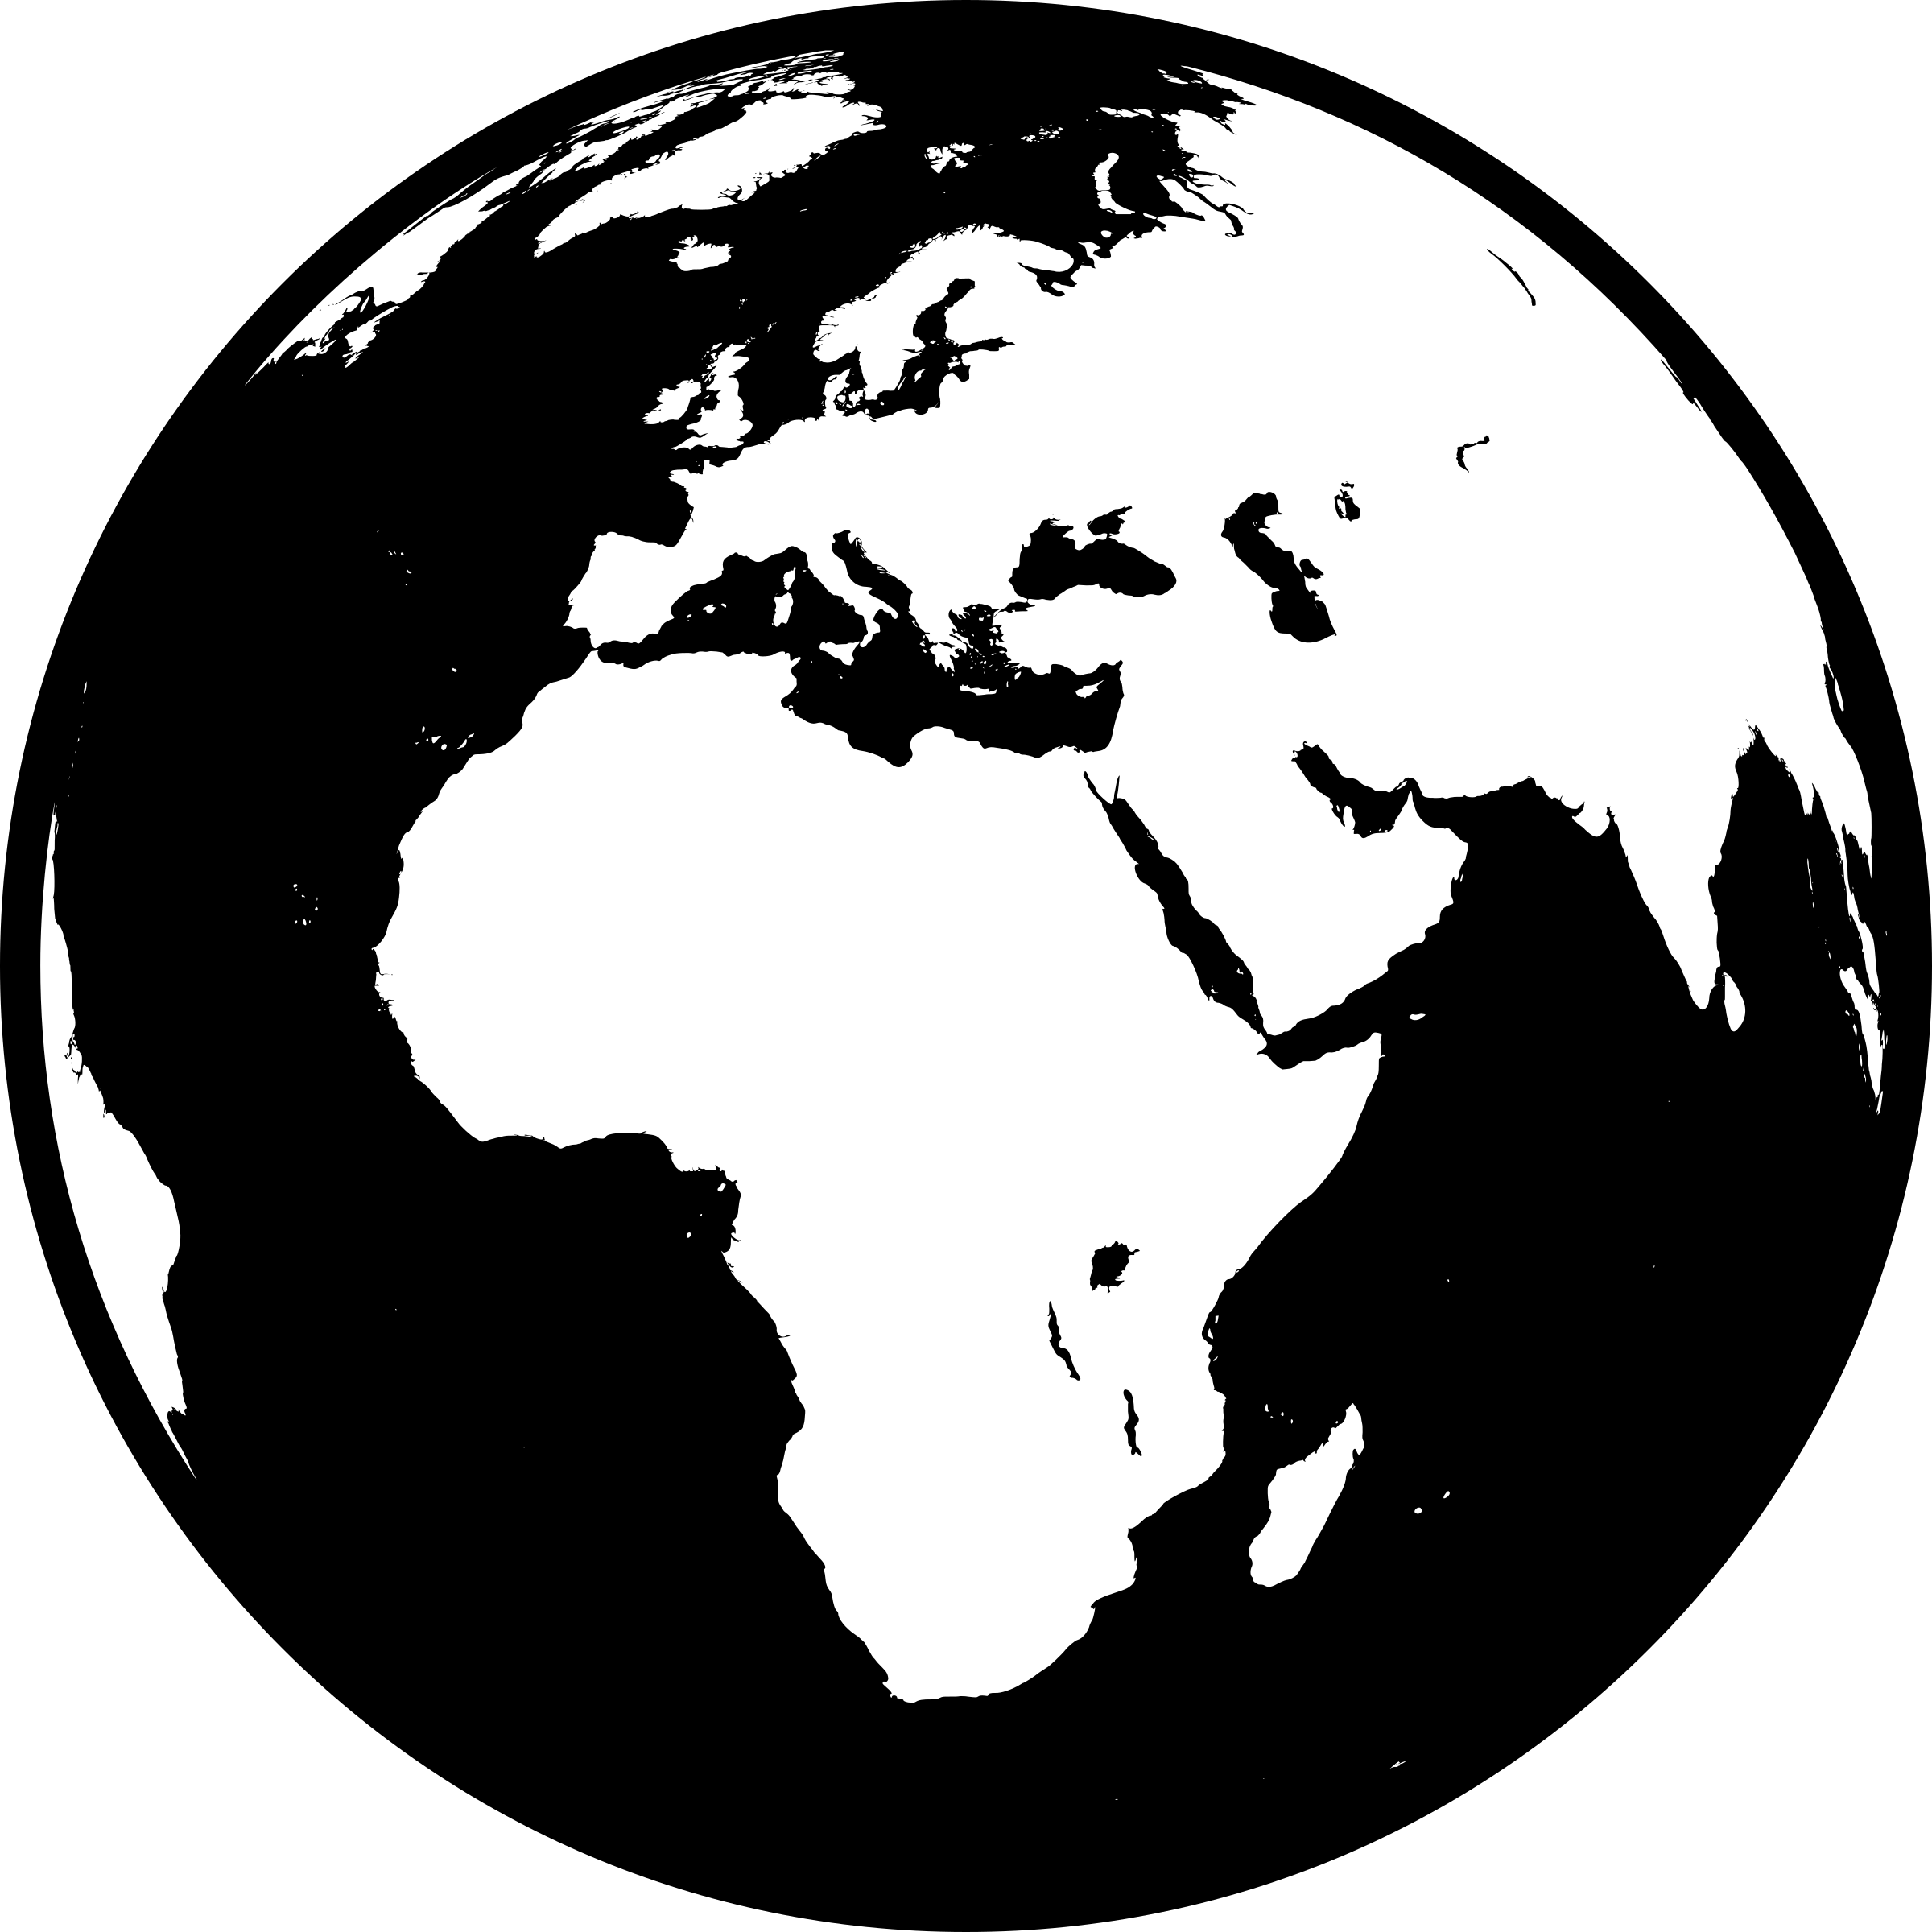 Globe png black and white. Showing africa asia europe